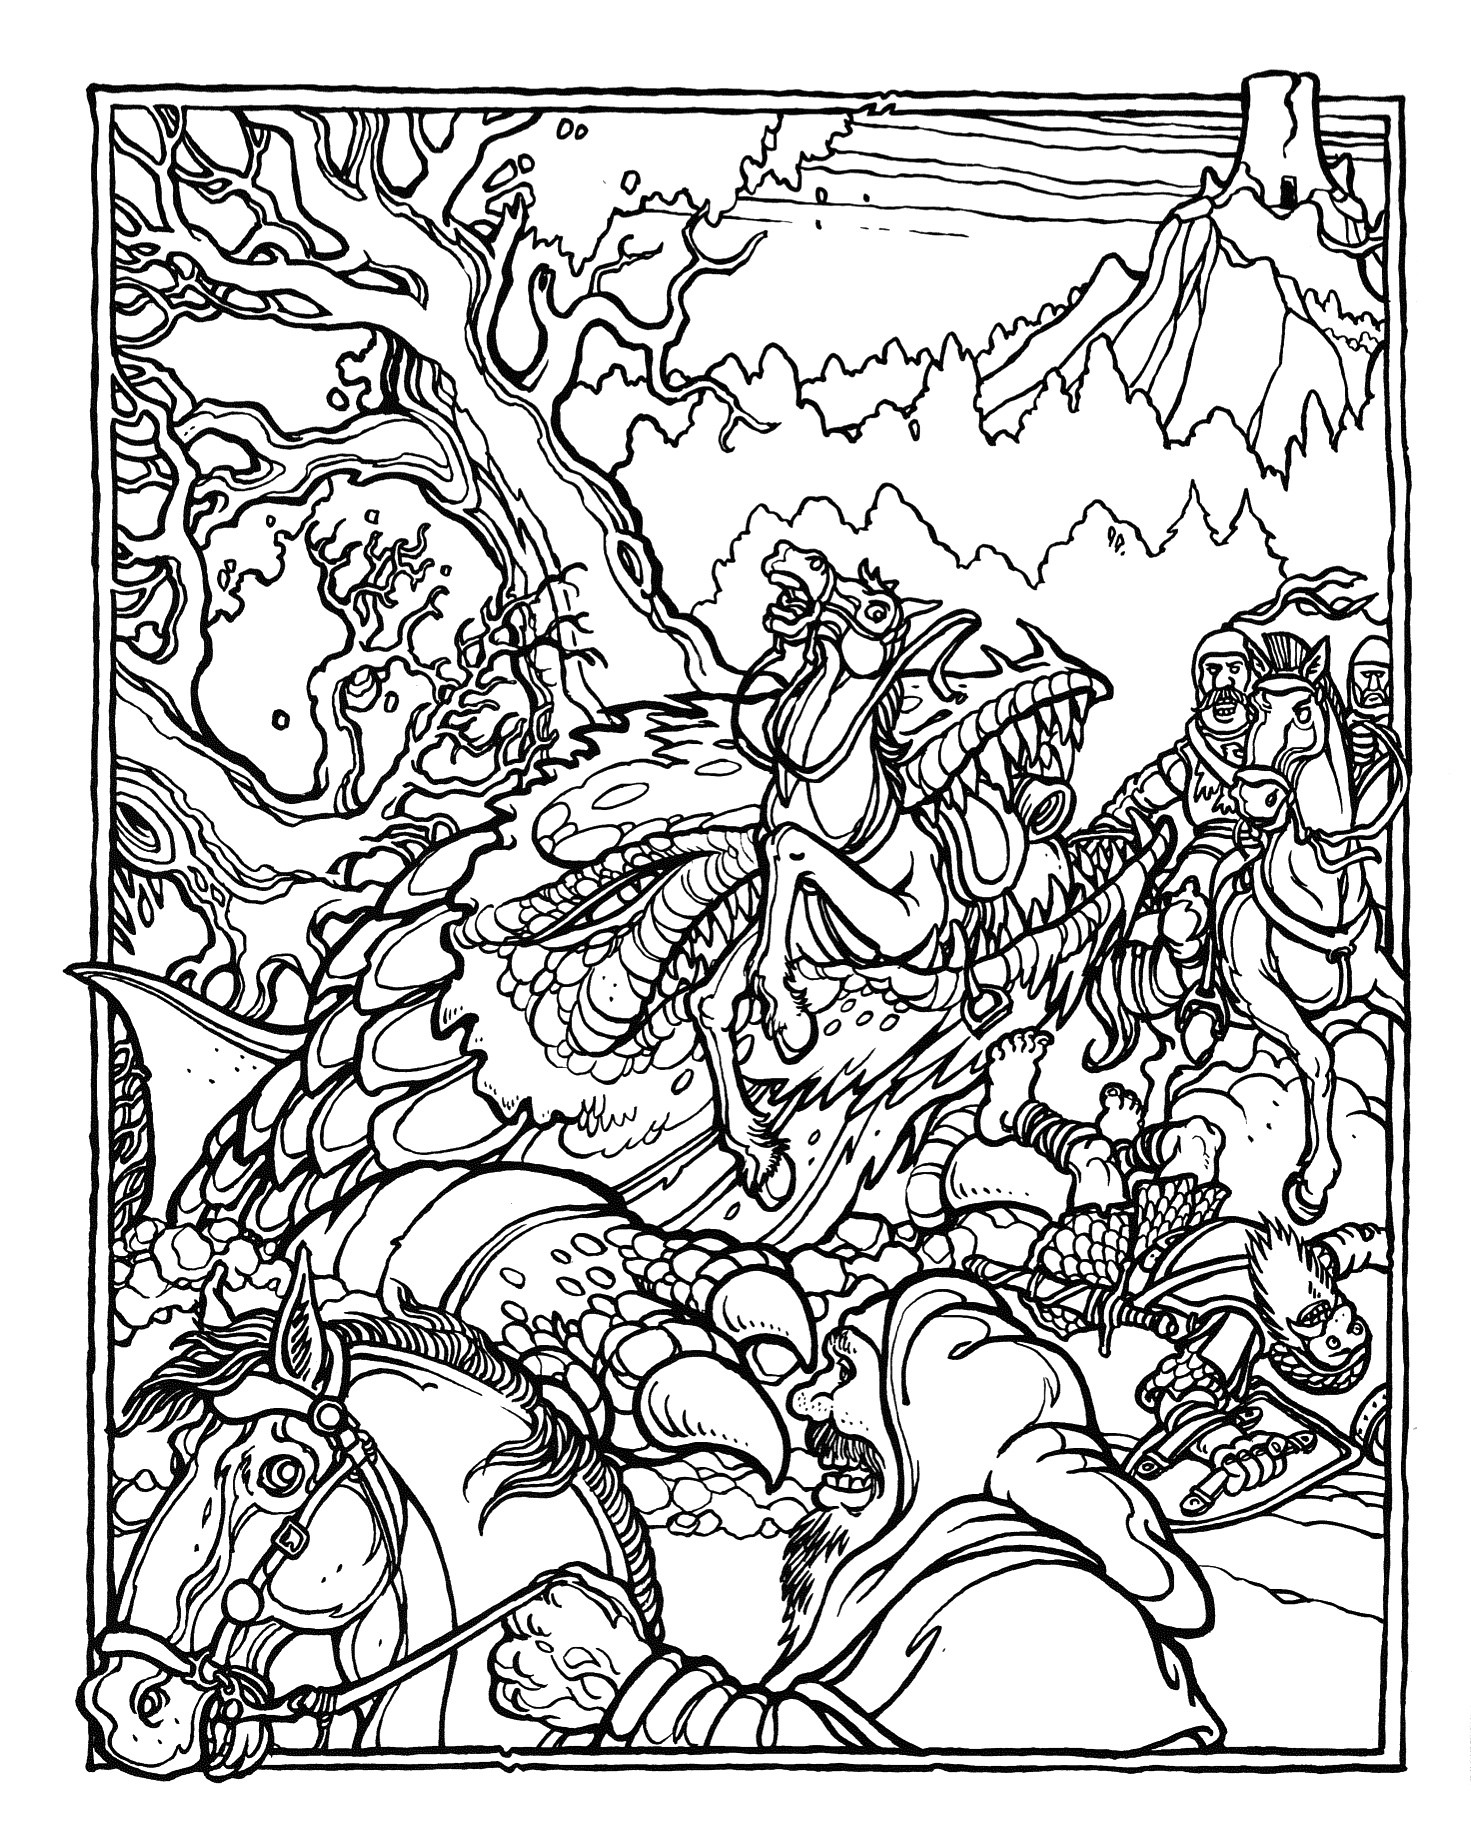 Best ideas about Dragons Coloring Pages For Adults . Save or Pin MONSTER BRAINS The ficial Advanced Dungeons and Dragons Now.